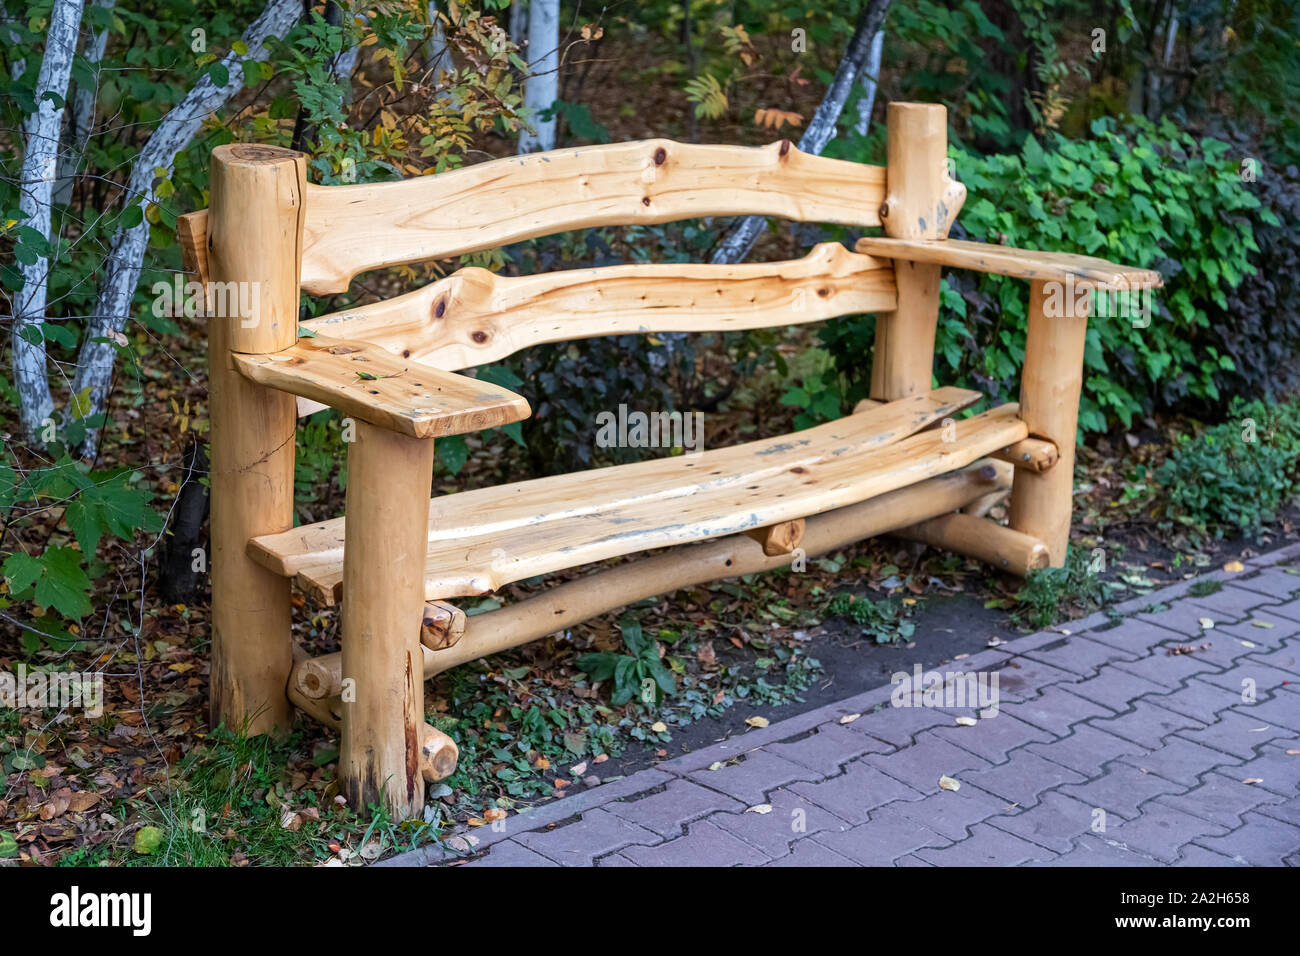 Superb Beautiful New Wooden Bench Made Of Cedar Stands In The Park Gmtry Best Dining Table And Chair Ideas Images Gmtryco